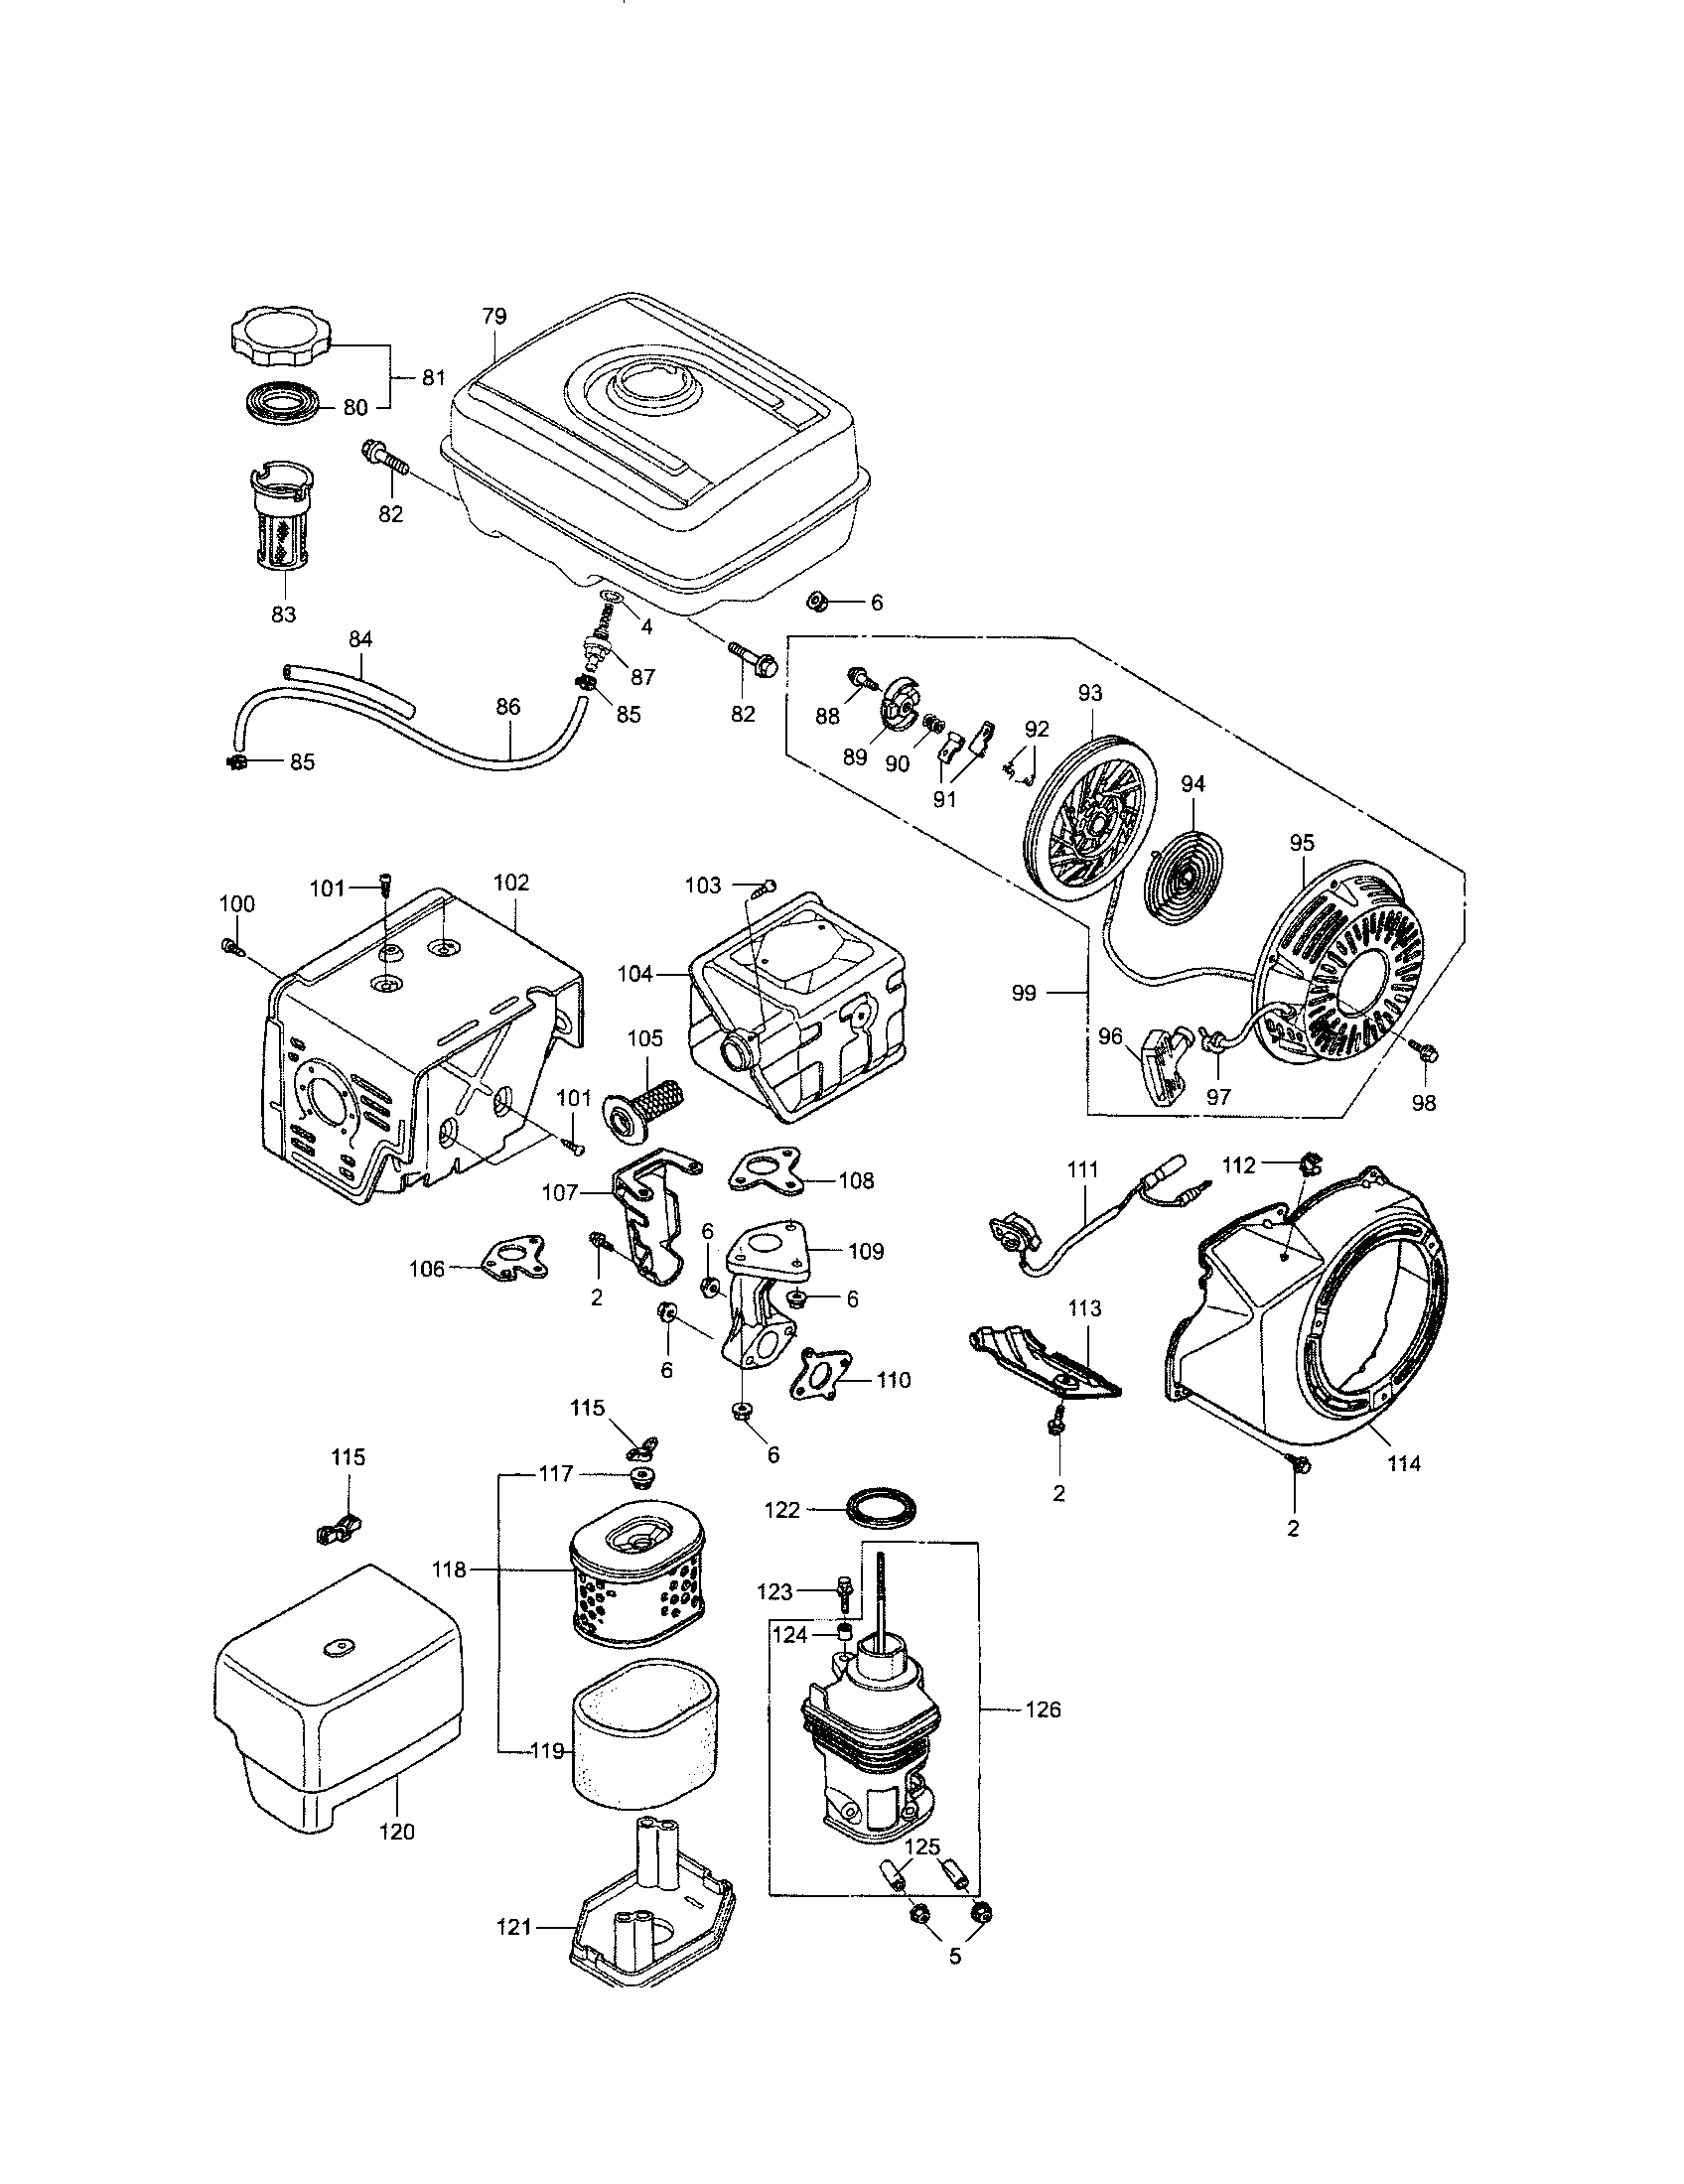 Honda model GX390UT1 engine genuine parts